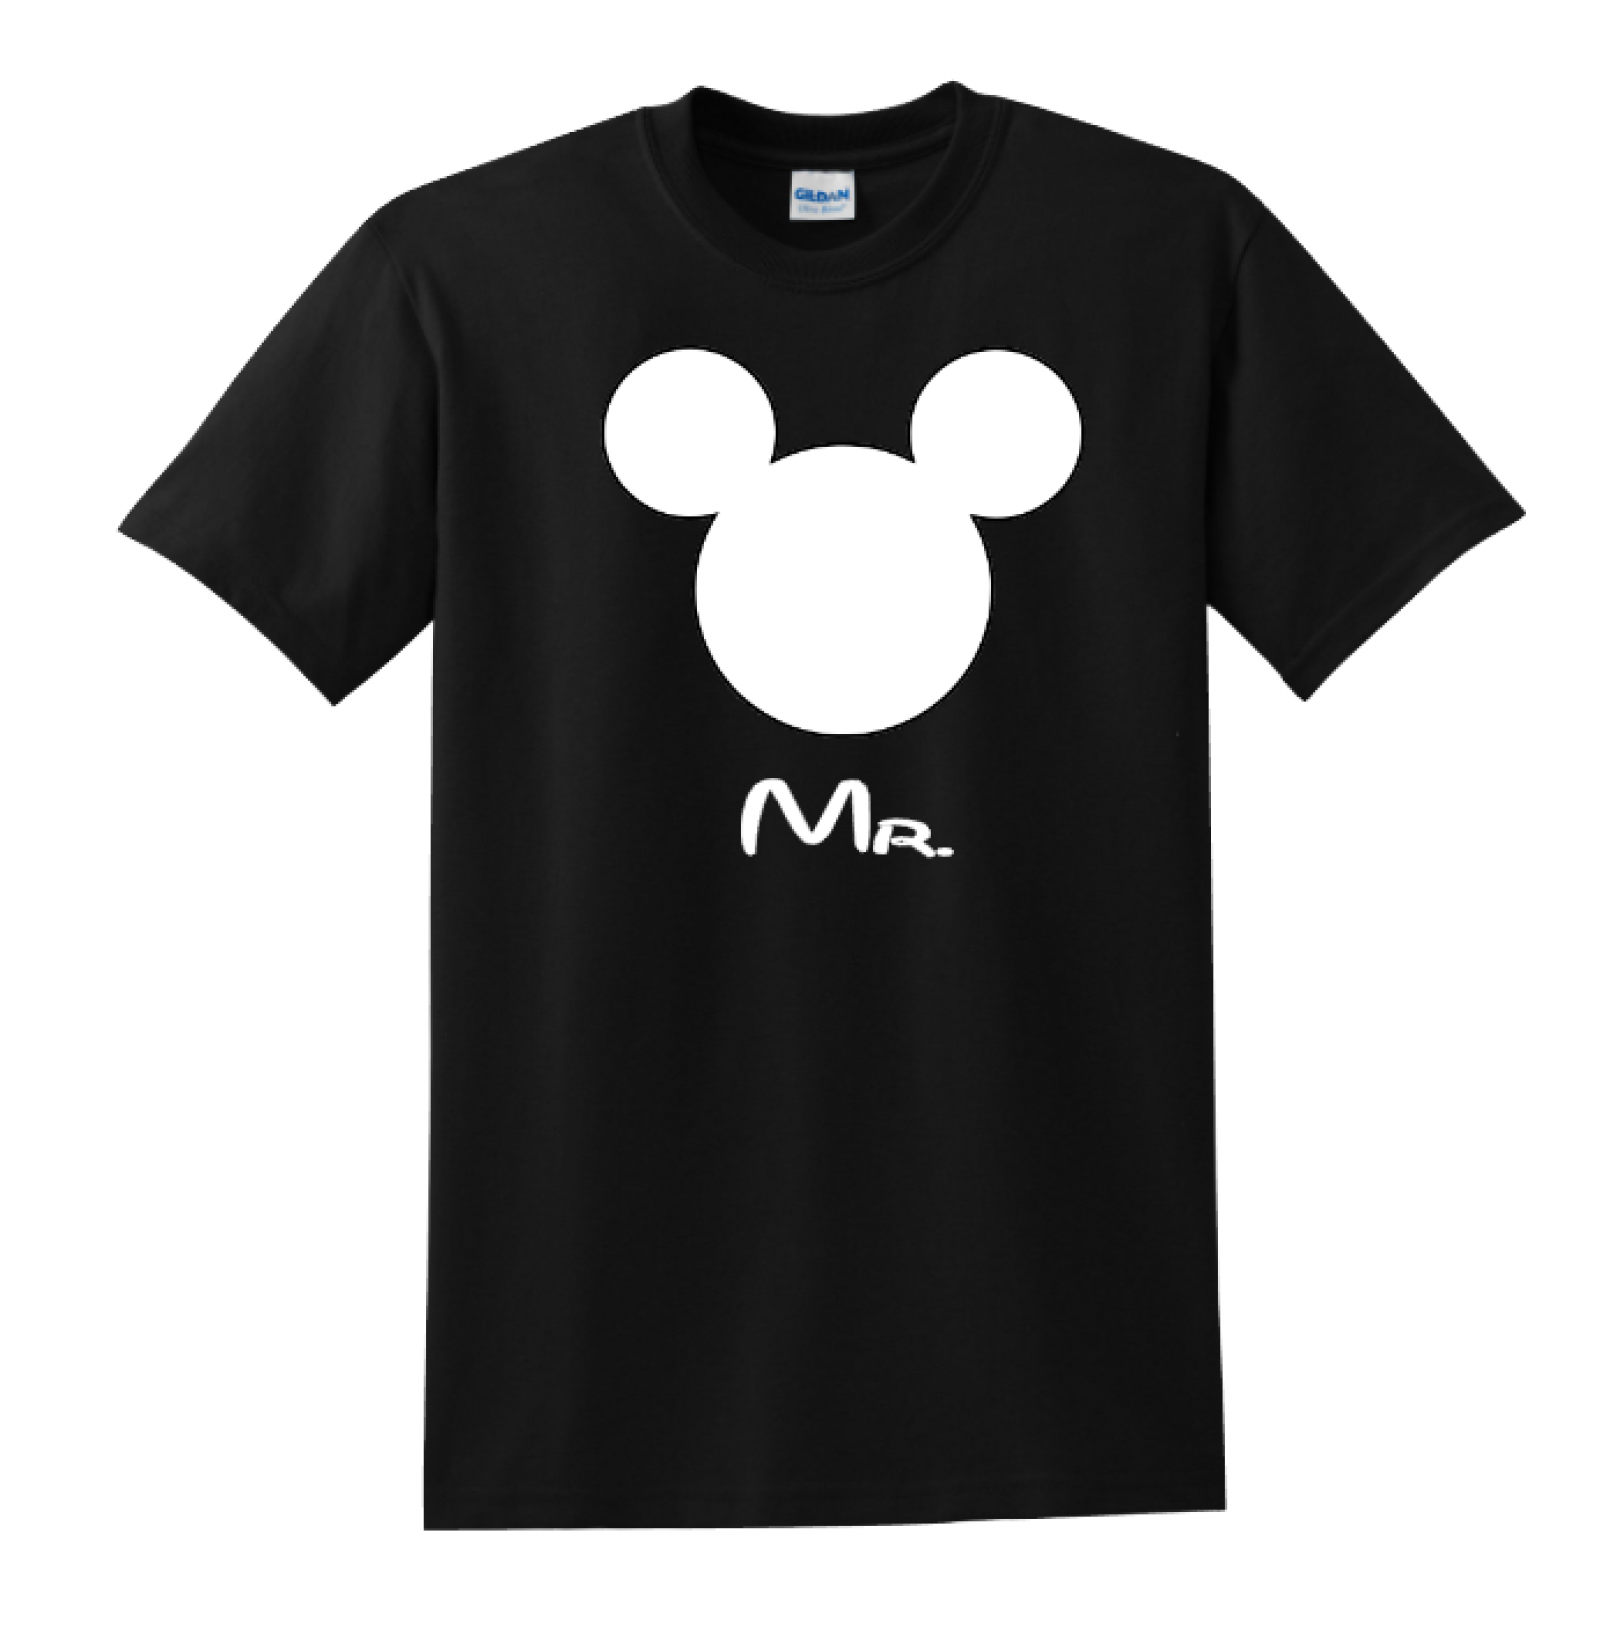 disney family mr mrs custom t shirts black the official site of logan to layla. Black Bedroom Furniture Sets. Home Design Ideas